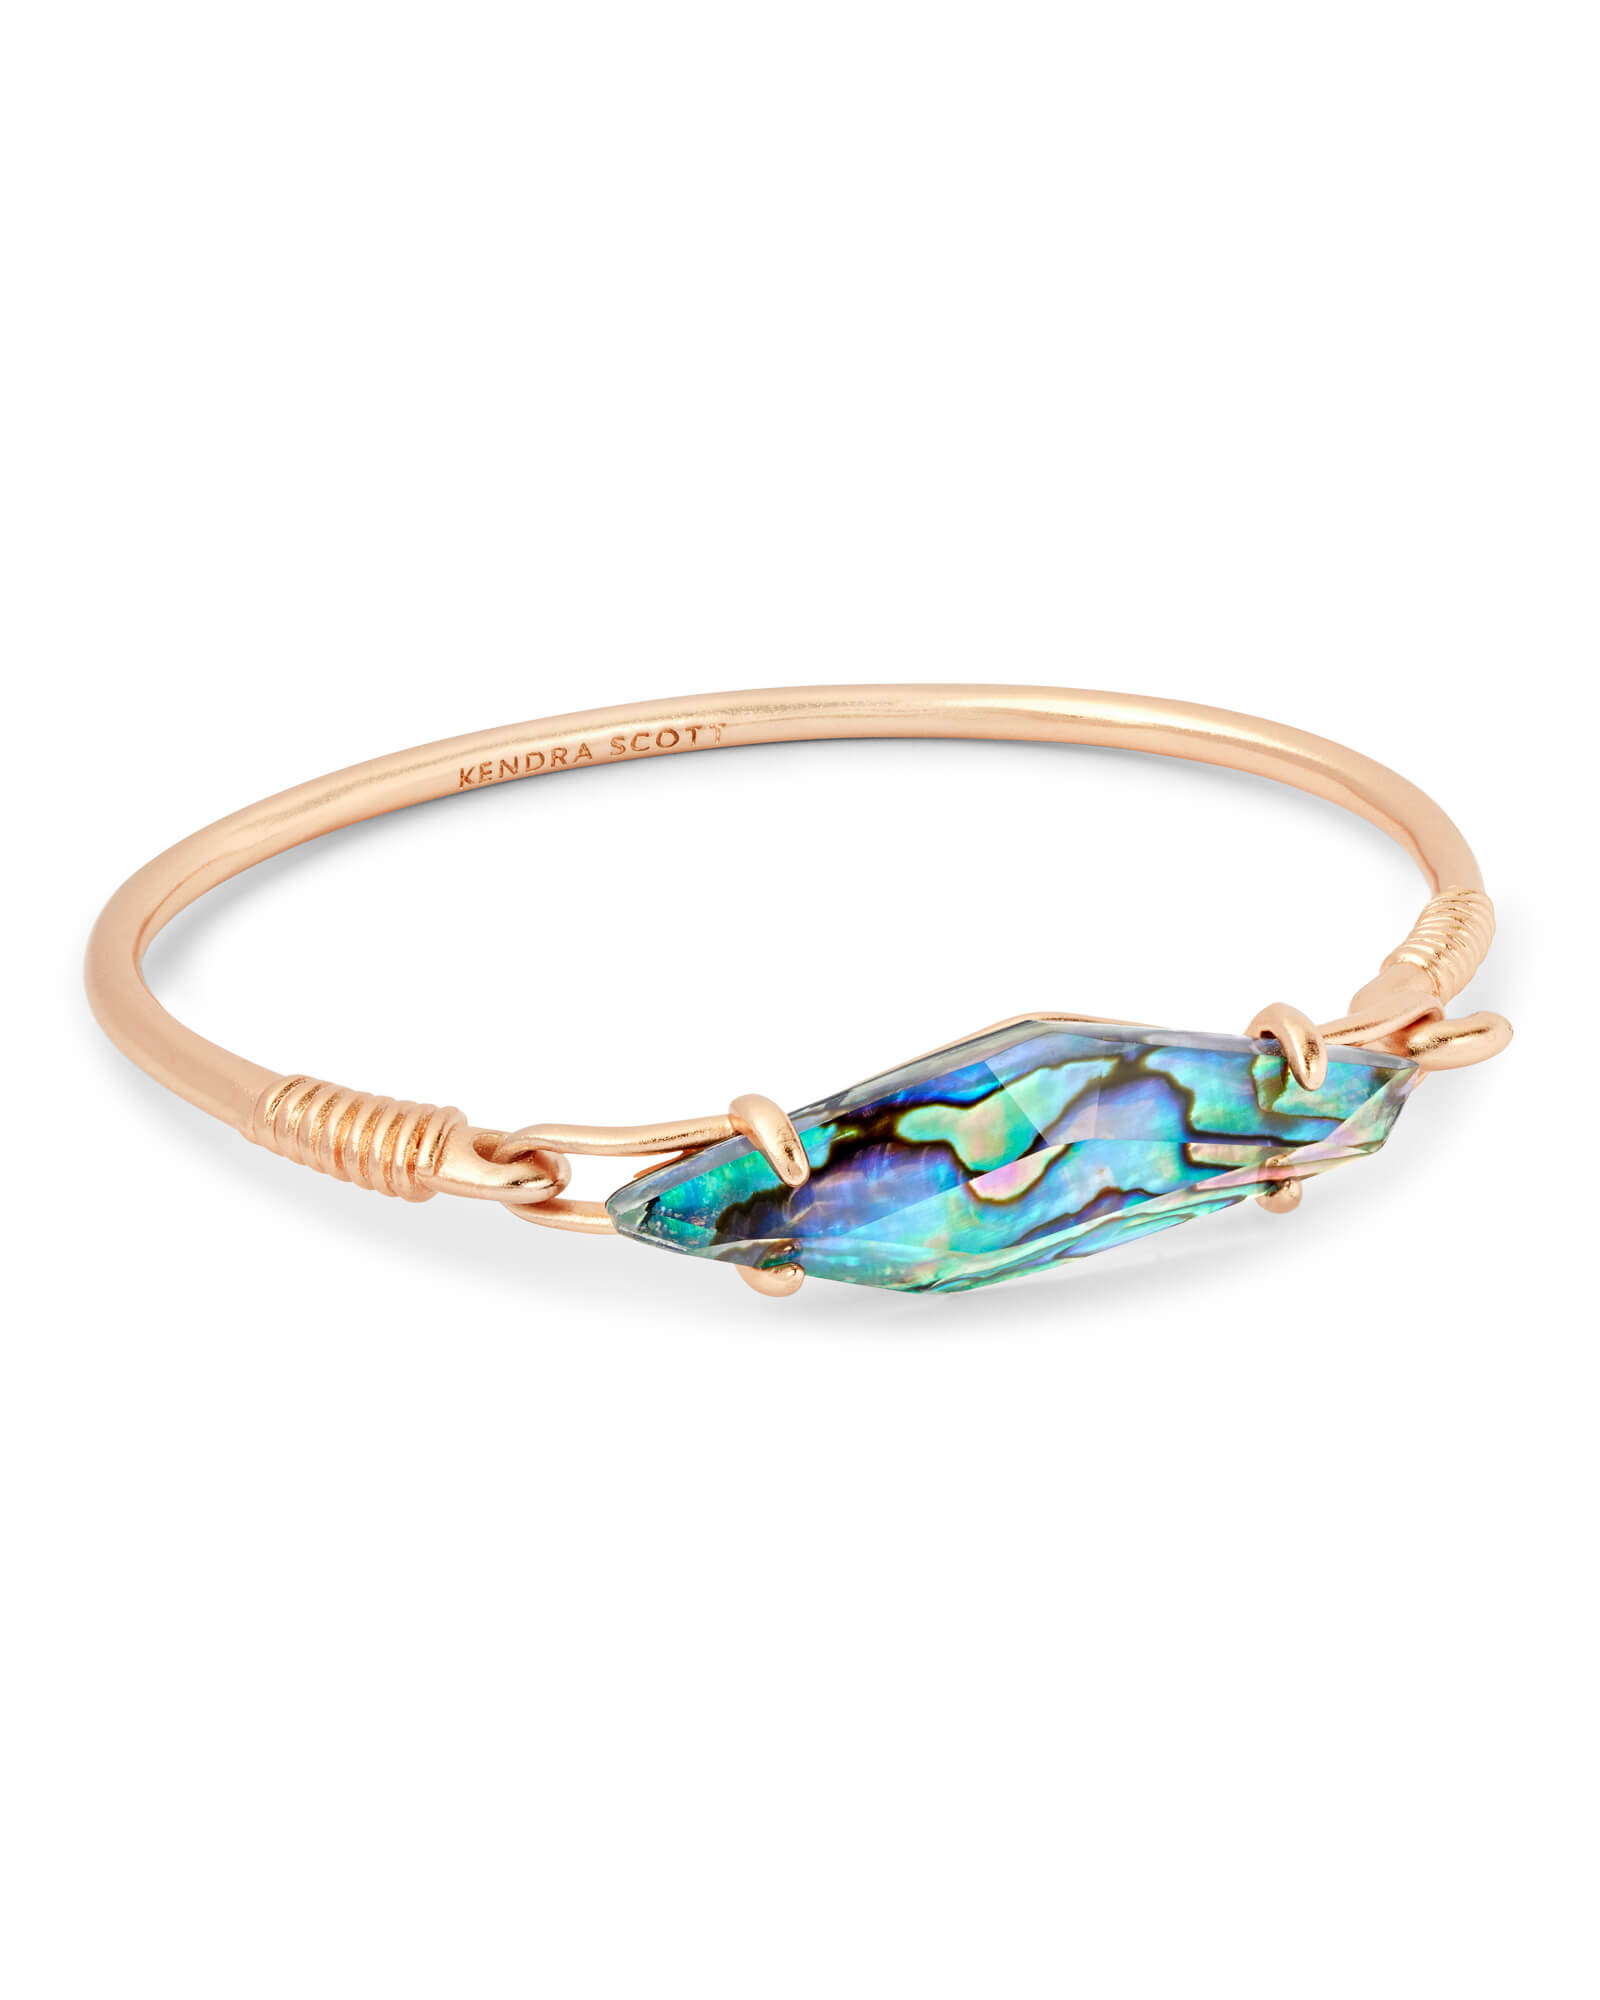 Lawrence Rose Gold Cuff Bracelet in Abalone Shell